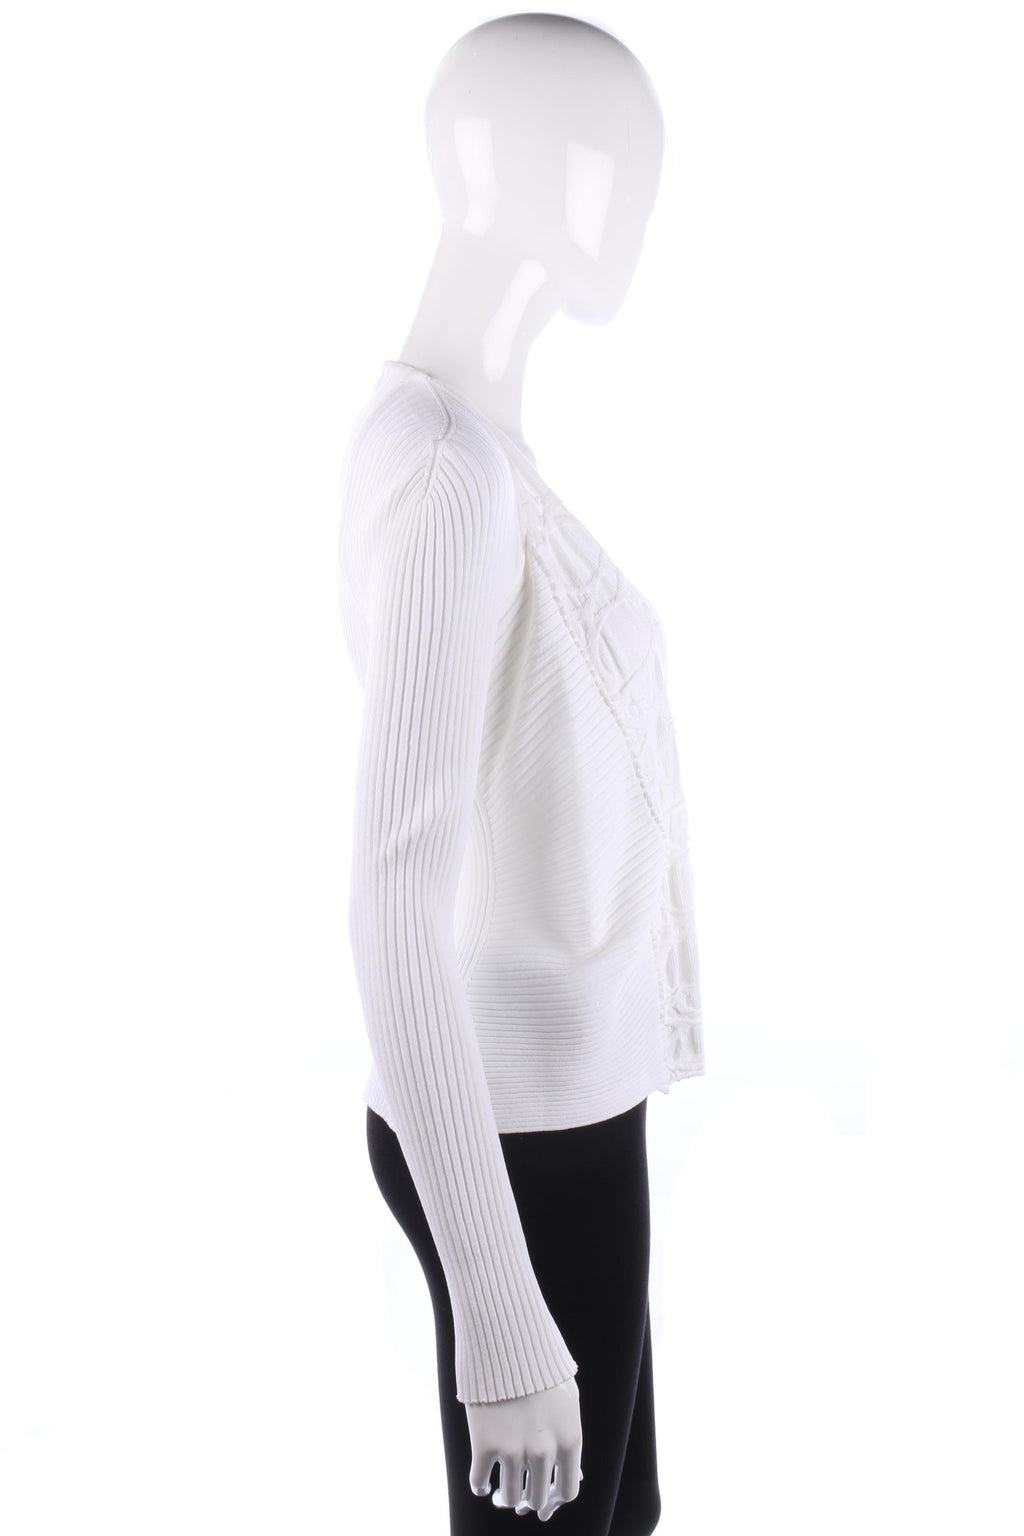 She's So Cardigan Ribbed Design White Size 42. Italian Designer Knitwear